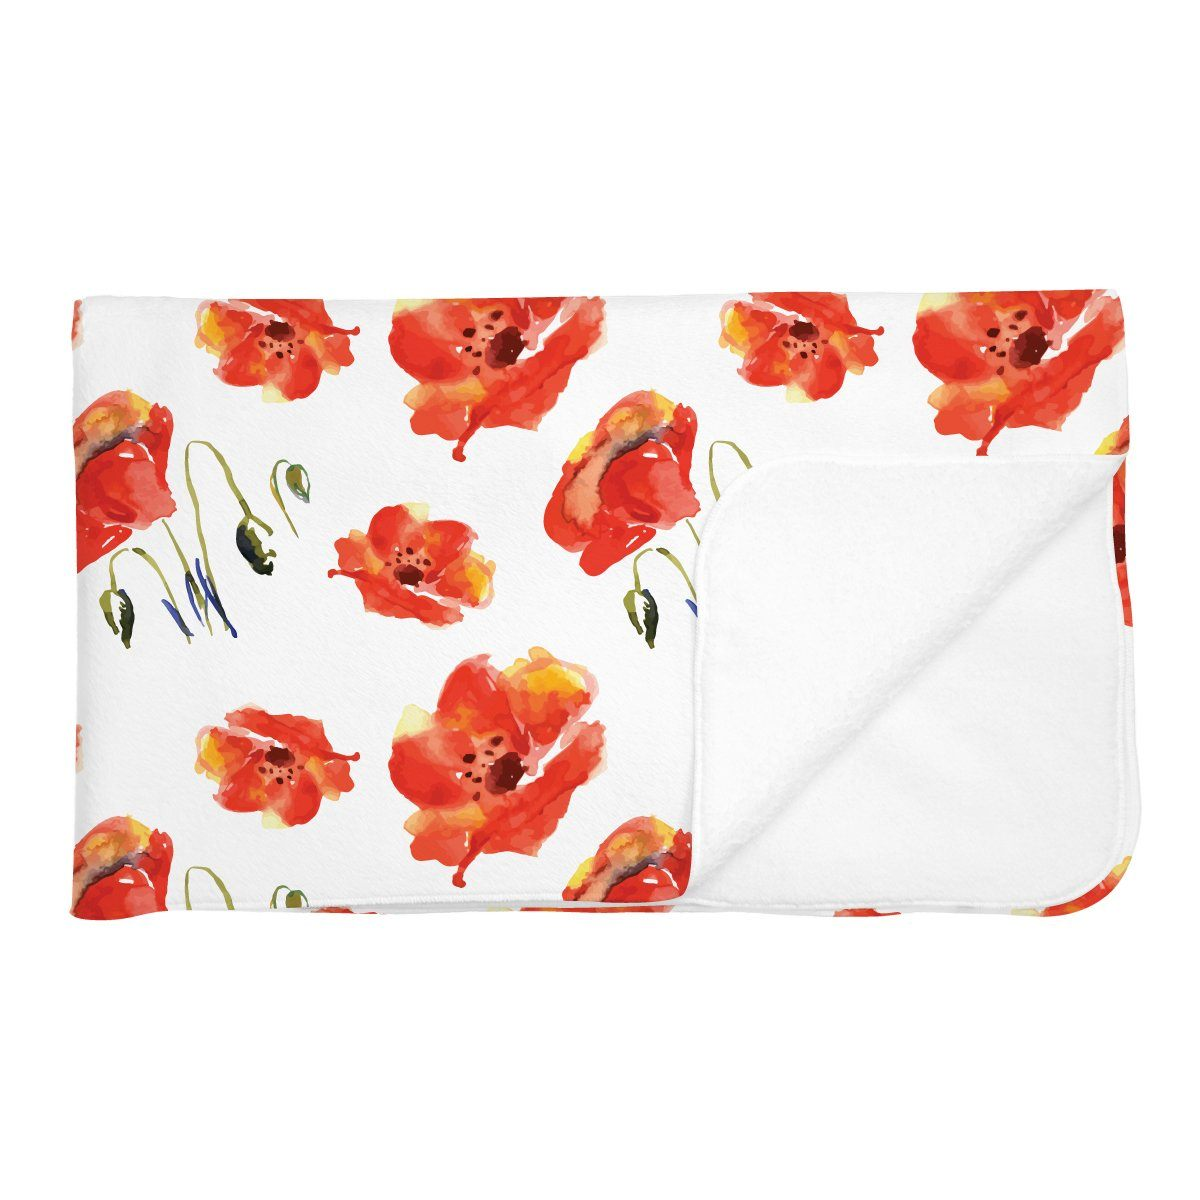 Eleanor's Poppies | Adult Size Blanket